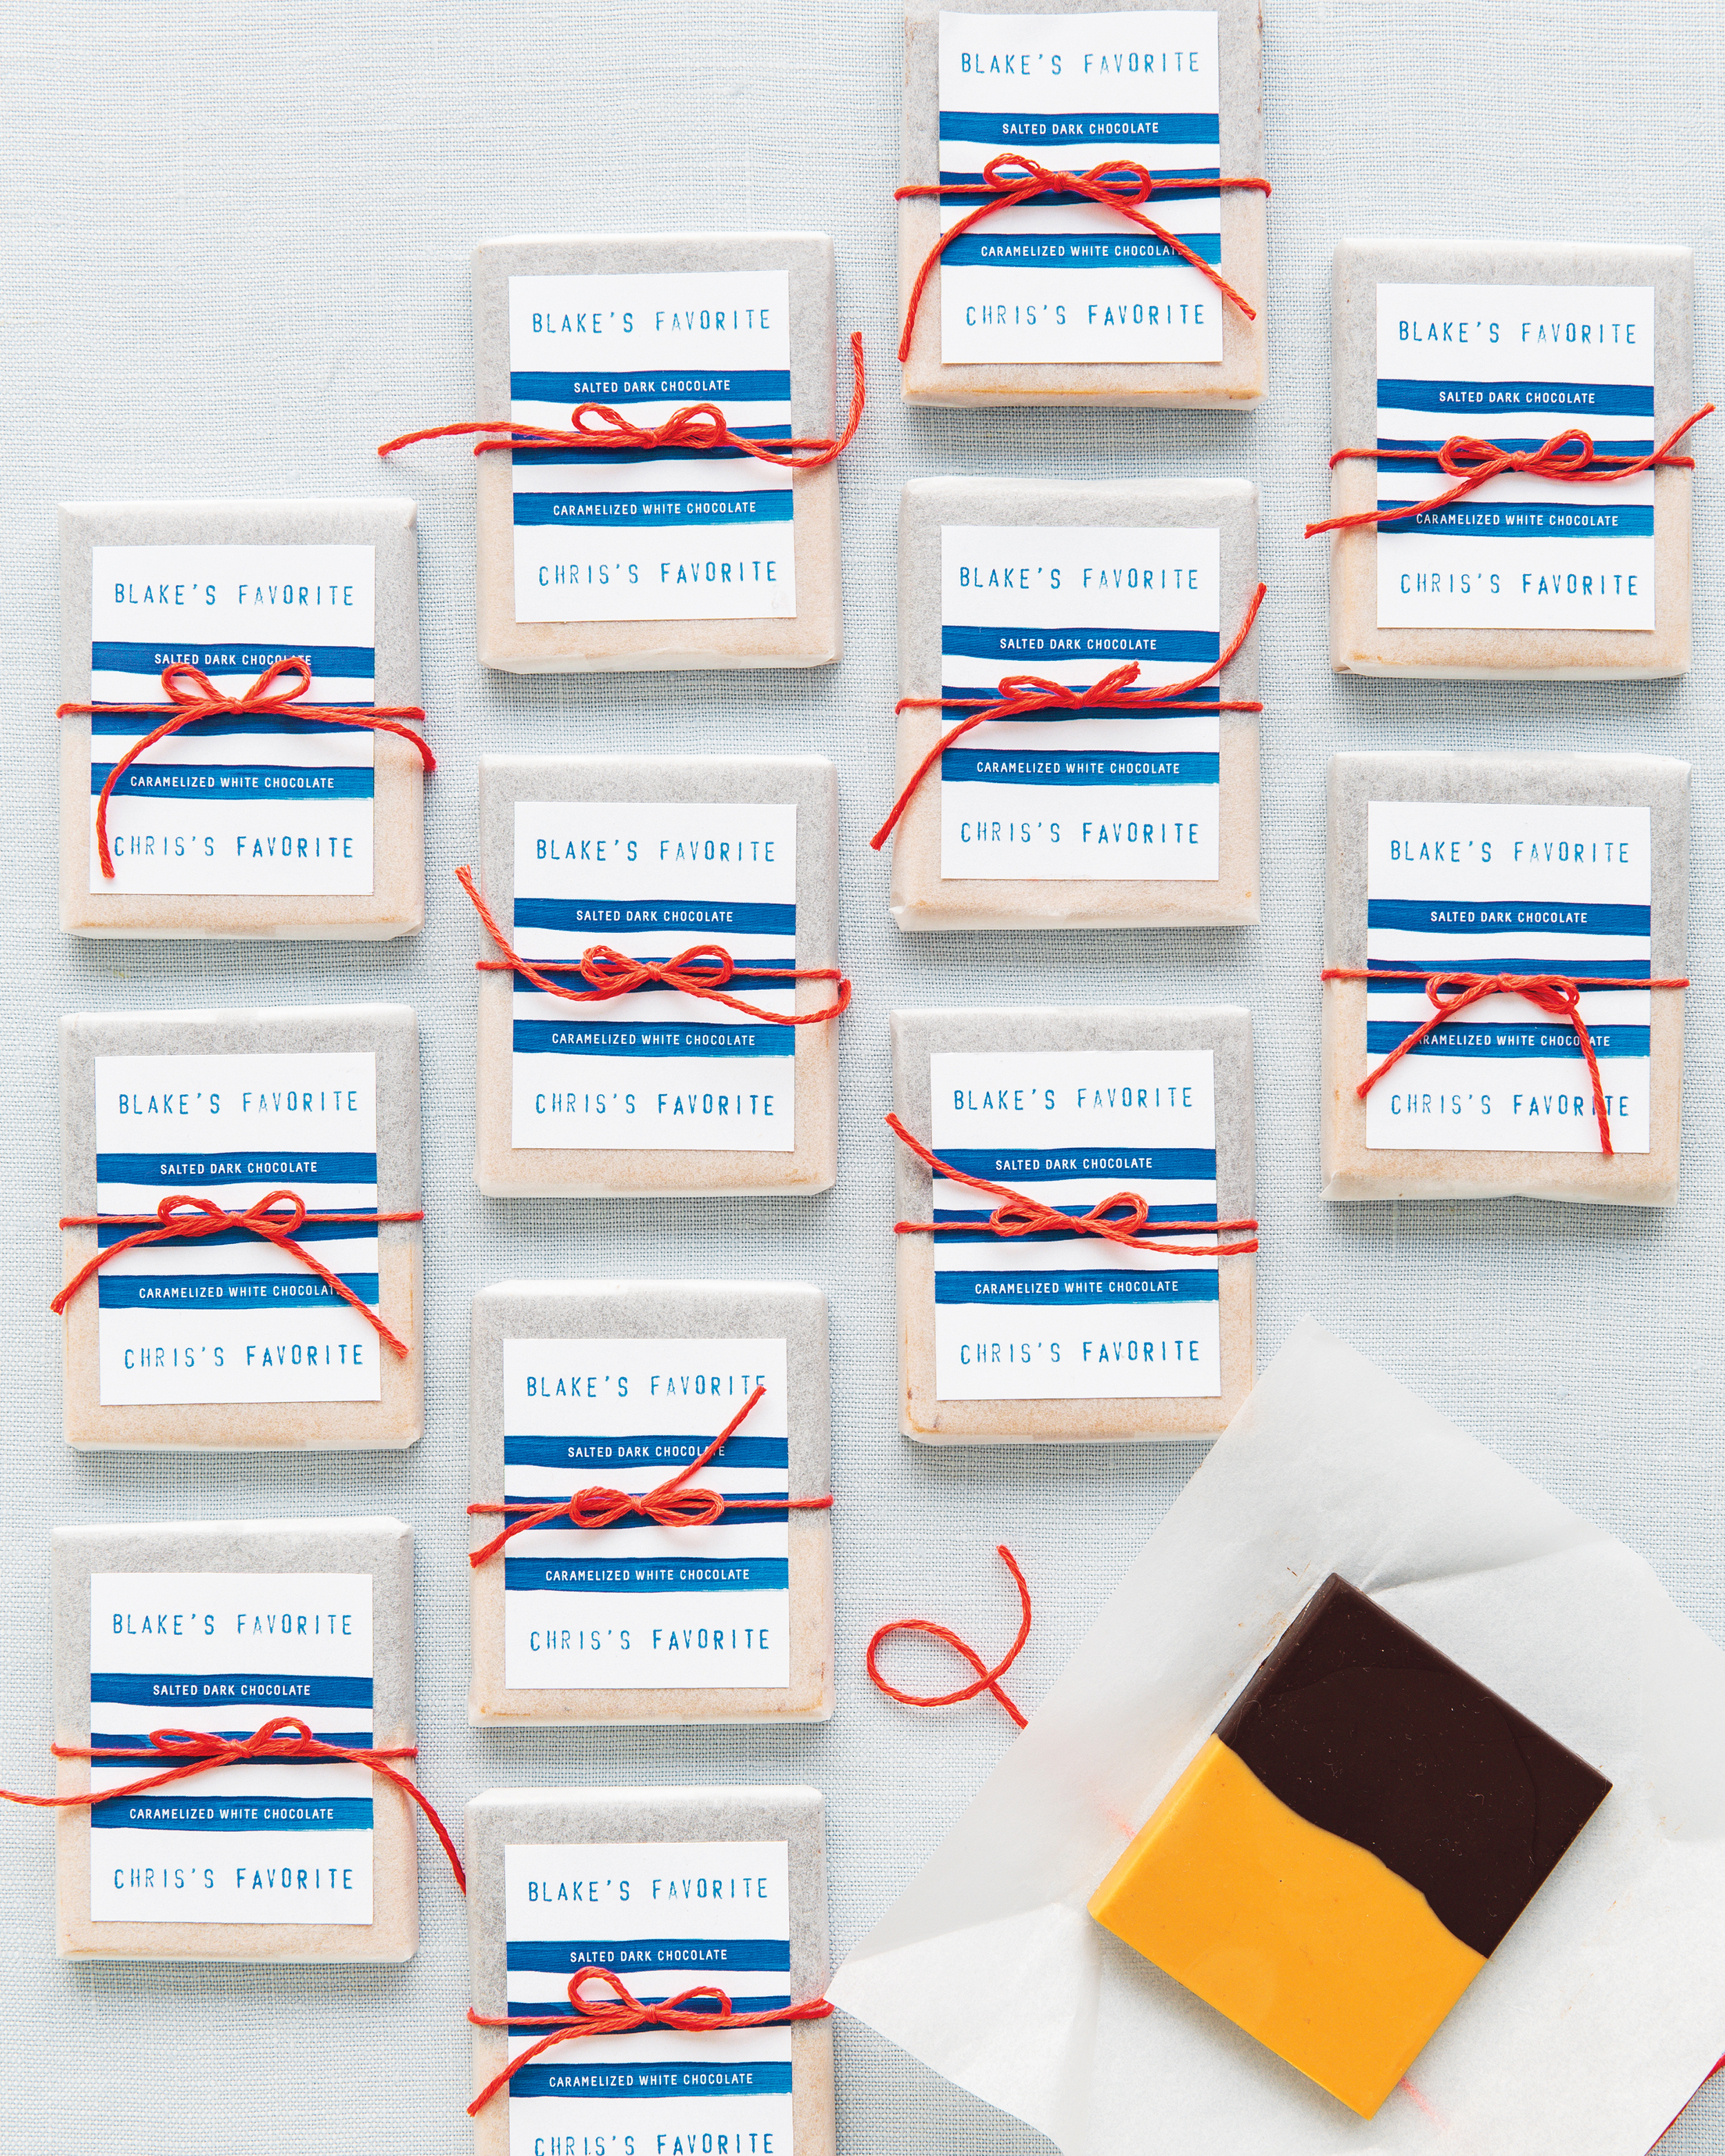 His & Hers Chocolate Wedding Favors